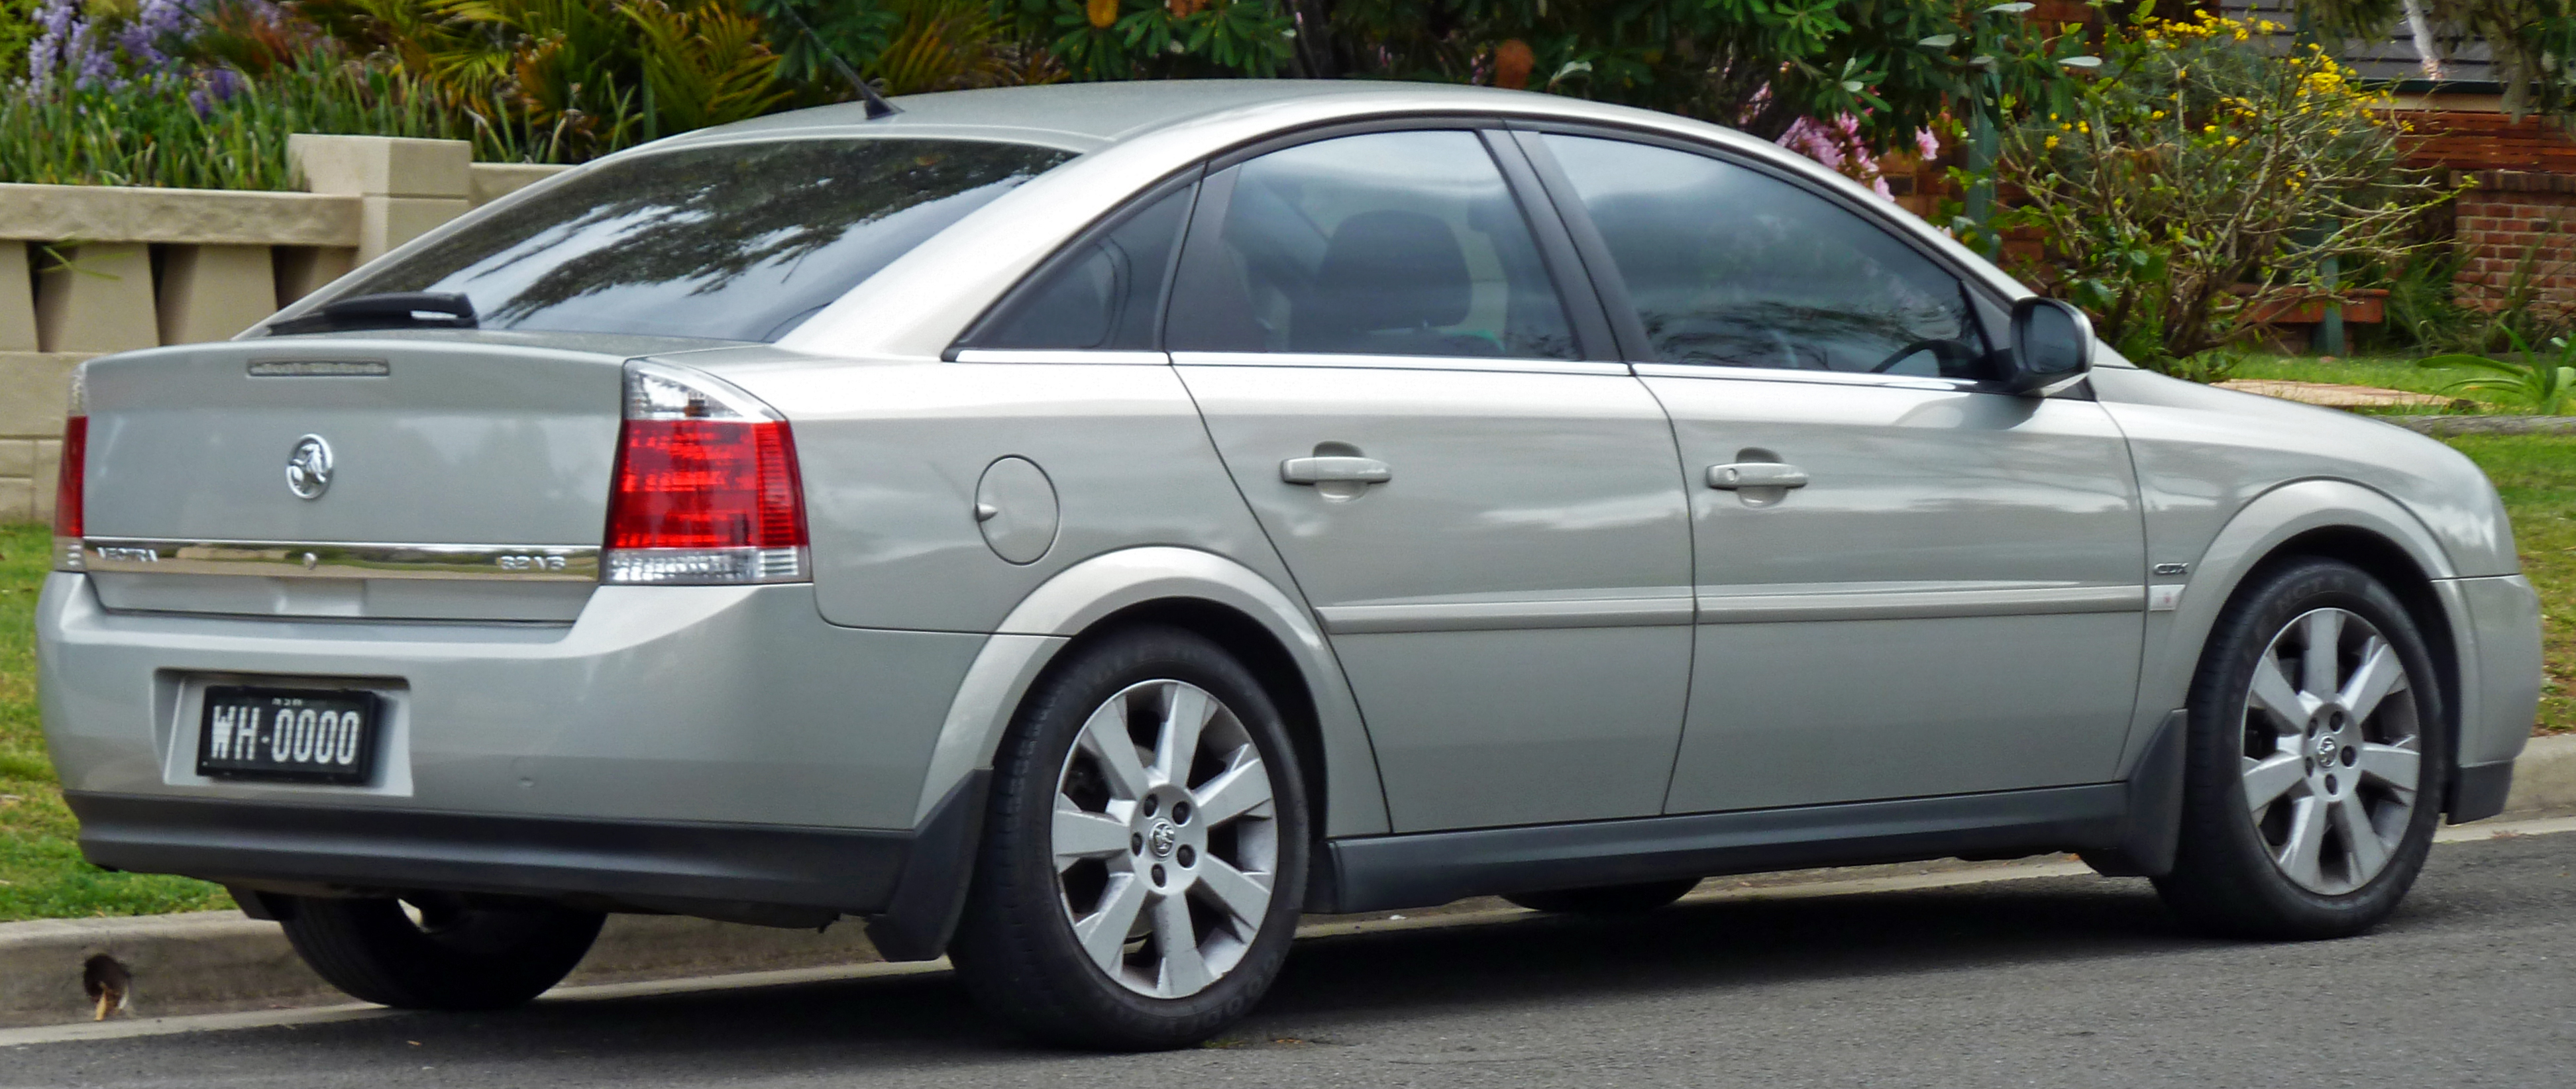 2004 Holden Vectra #2